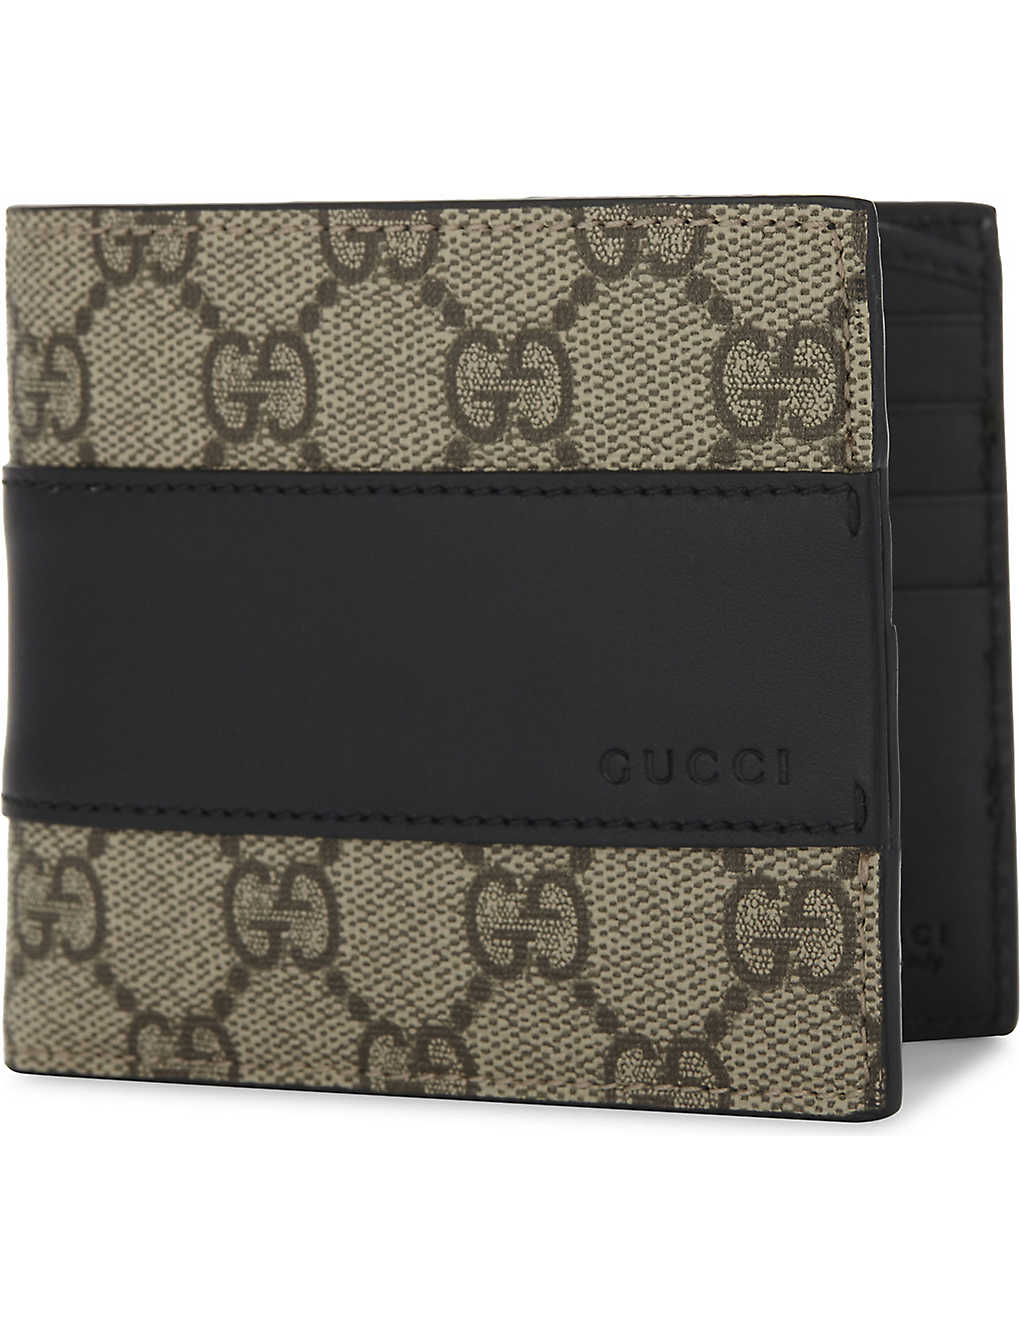 c899cab8c02384 GUCCI - Eden Supreme canvas and leather wallet | Selfridges.com